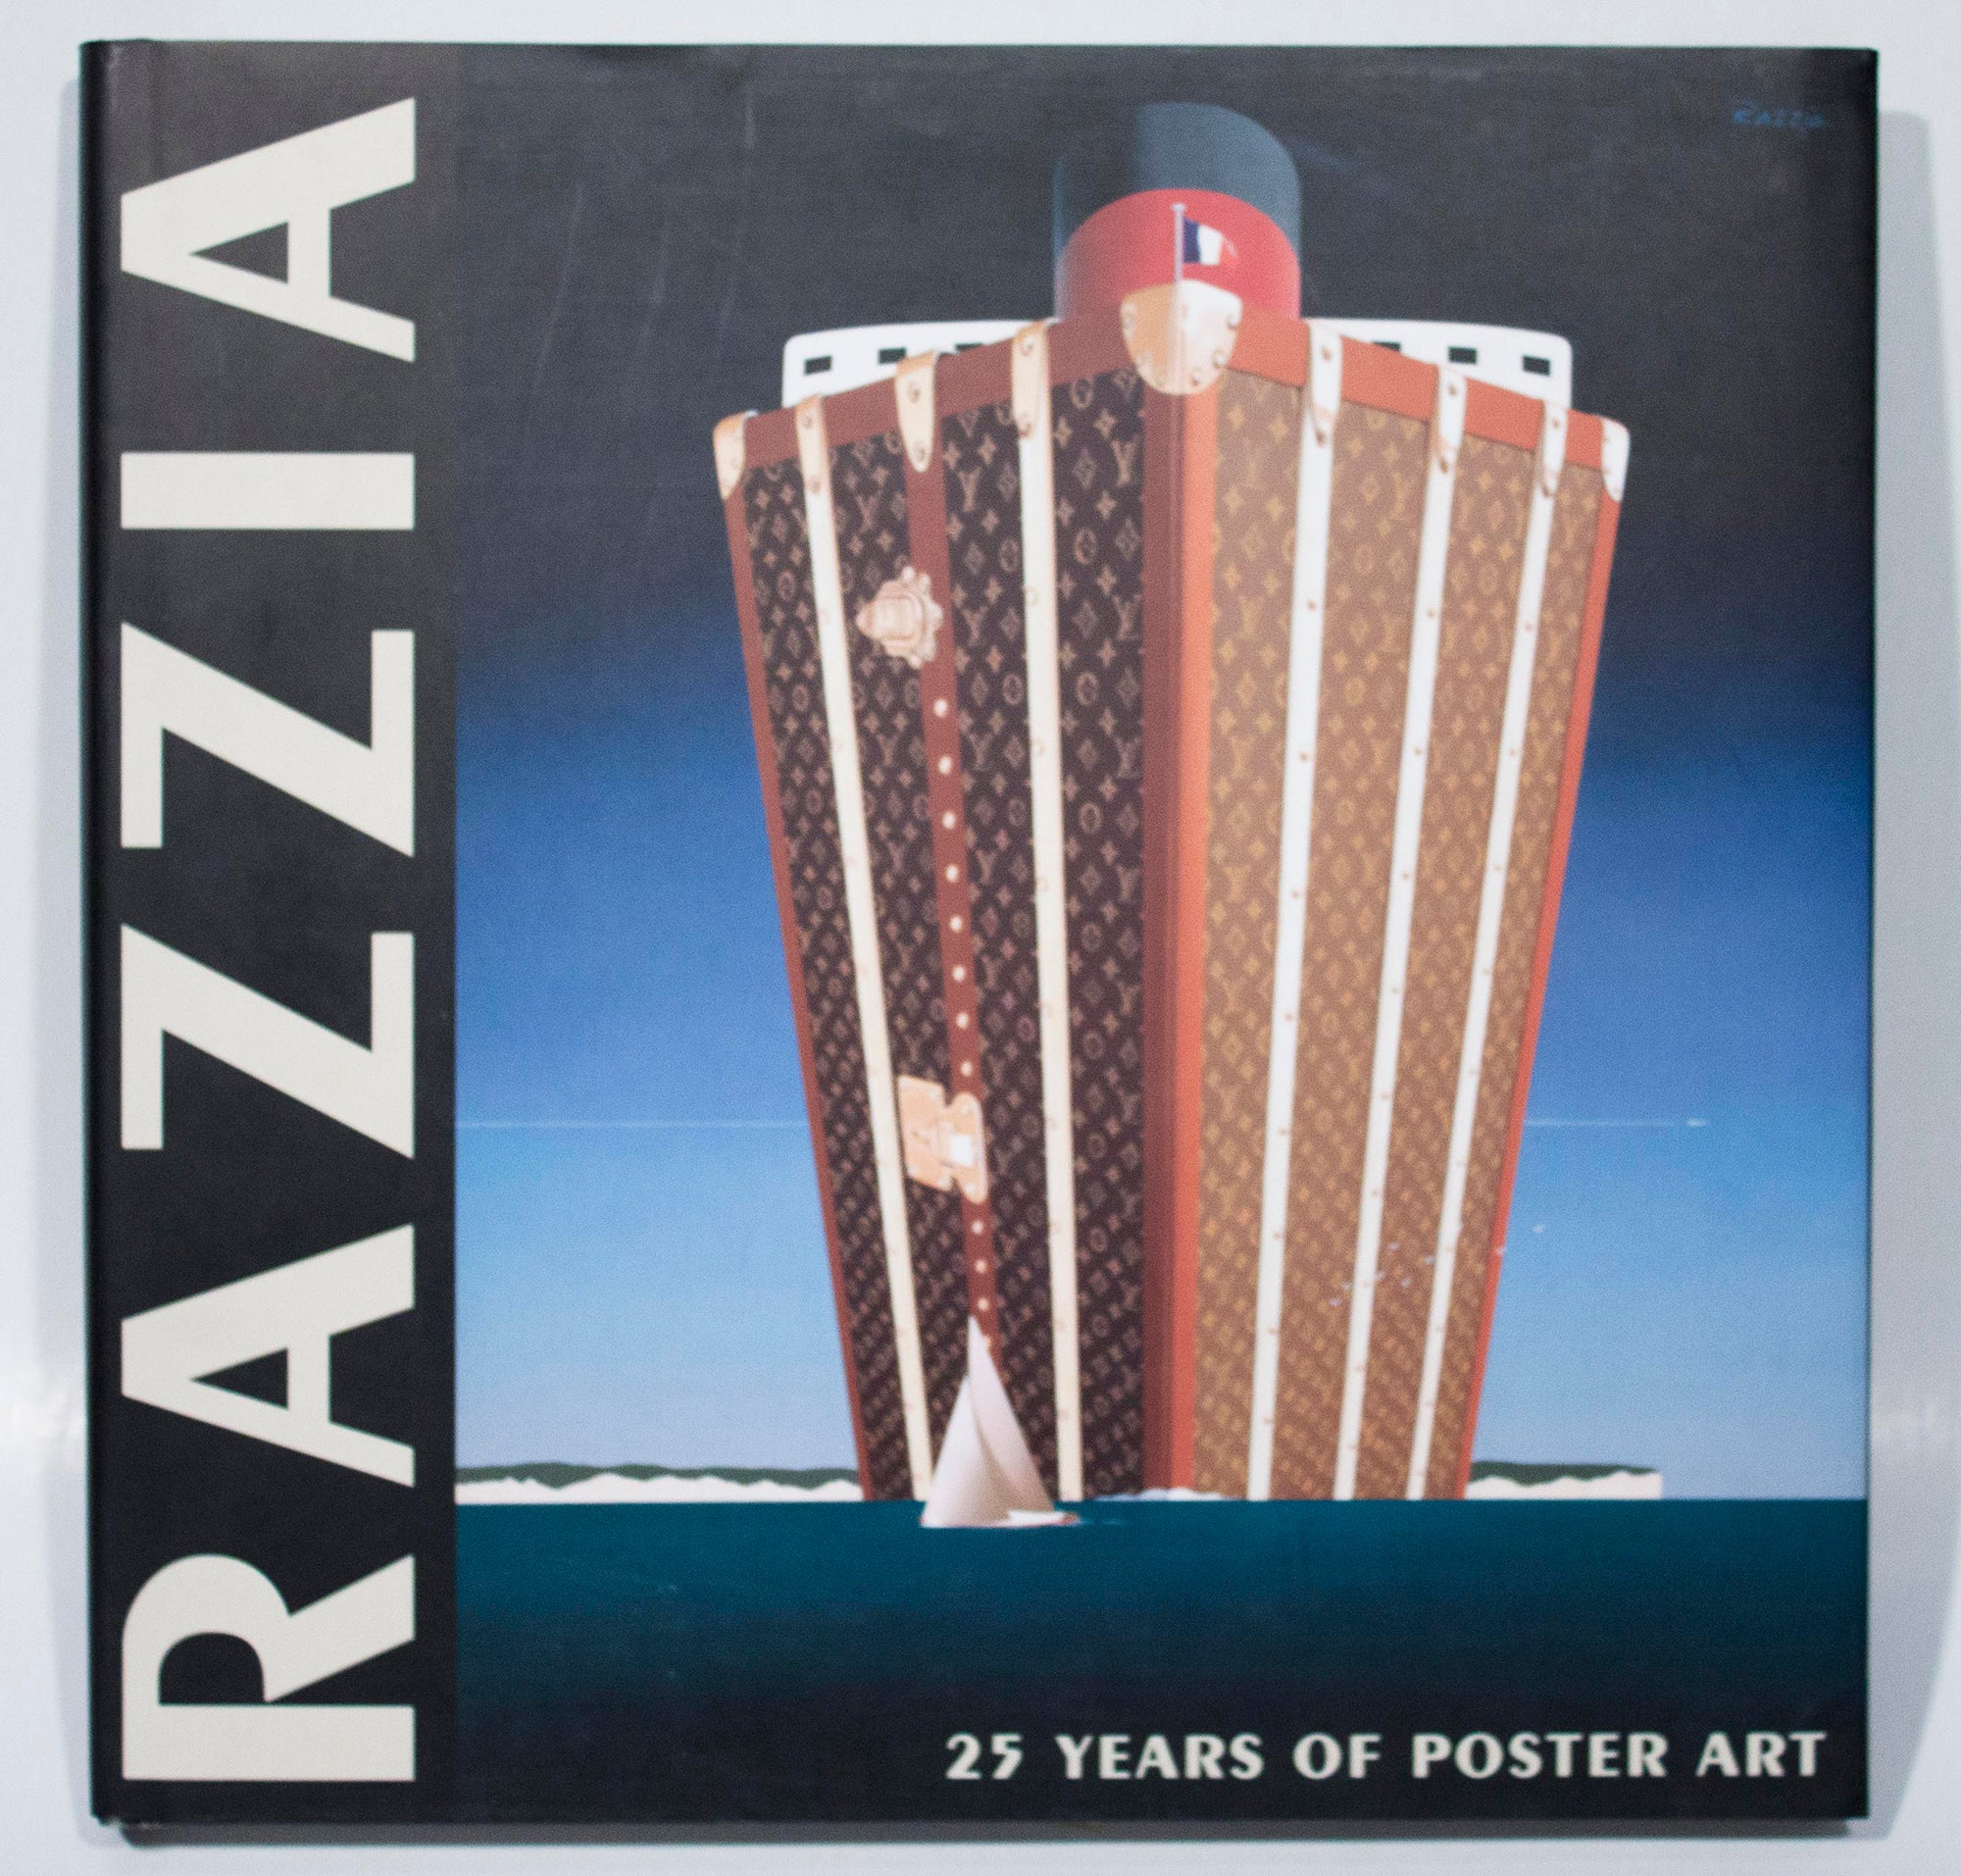 25 Years of Poster Art 11.5